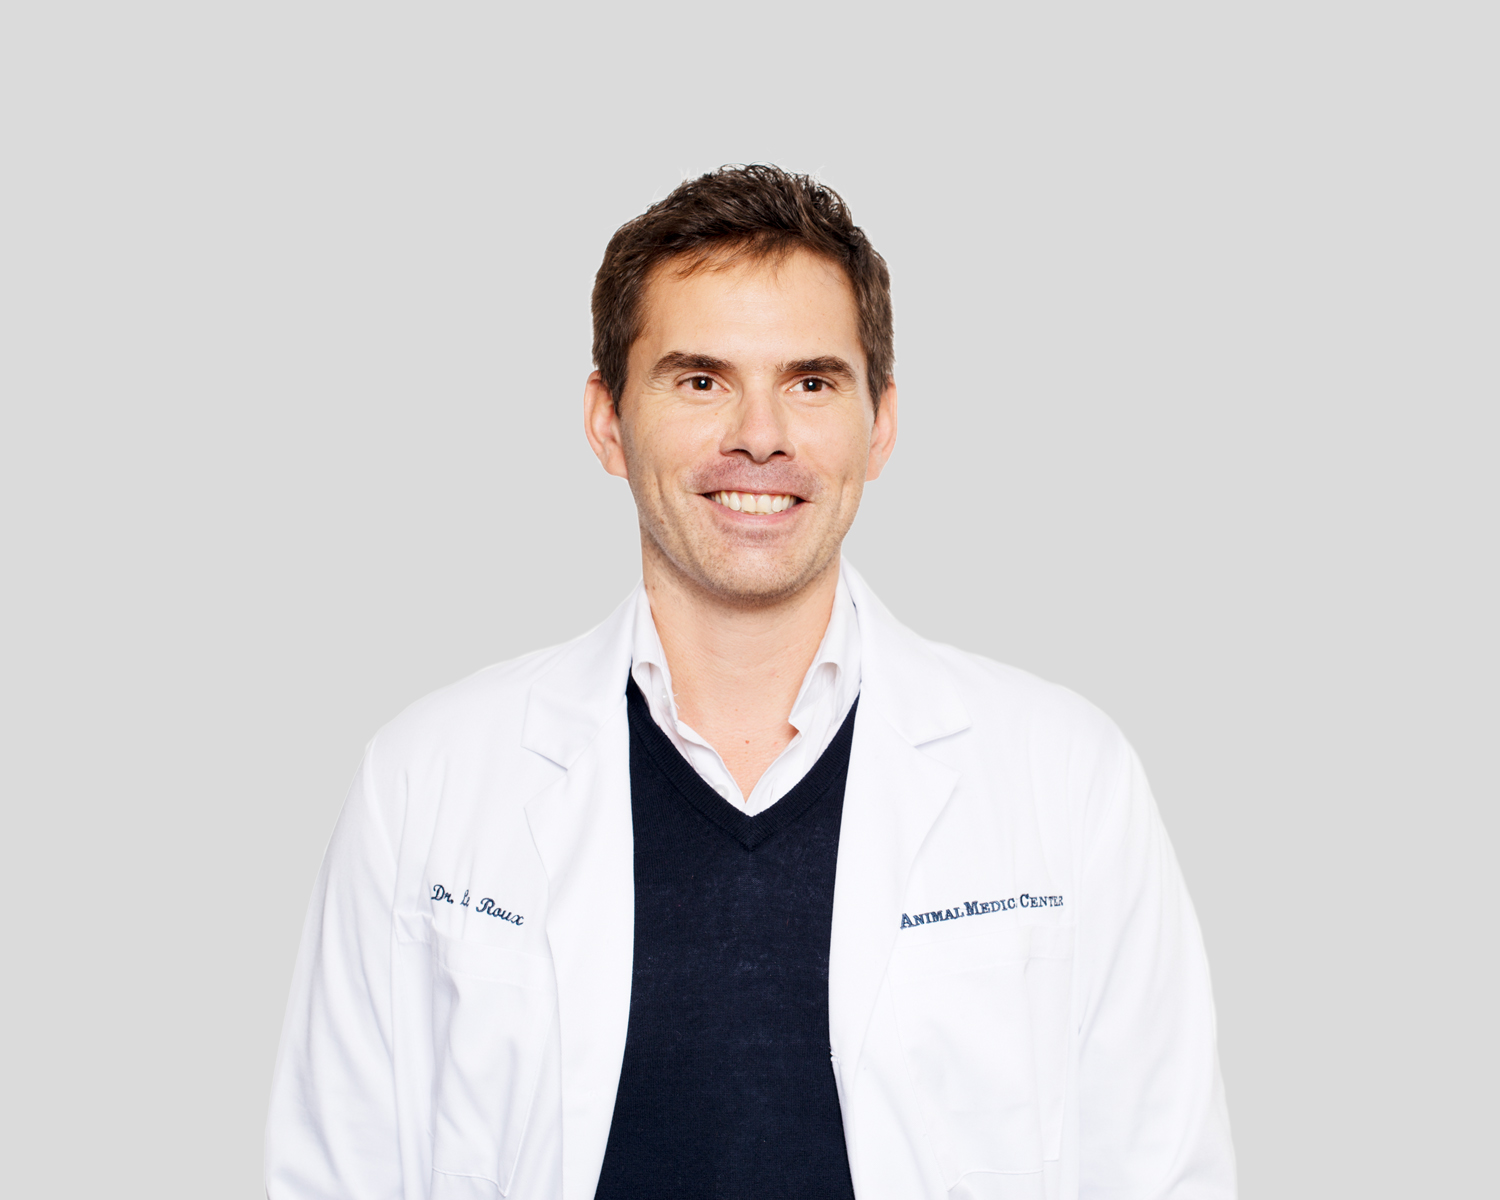 Dr. Alexandre Le Roux of the Animal Medical Center in New York City